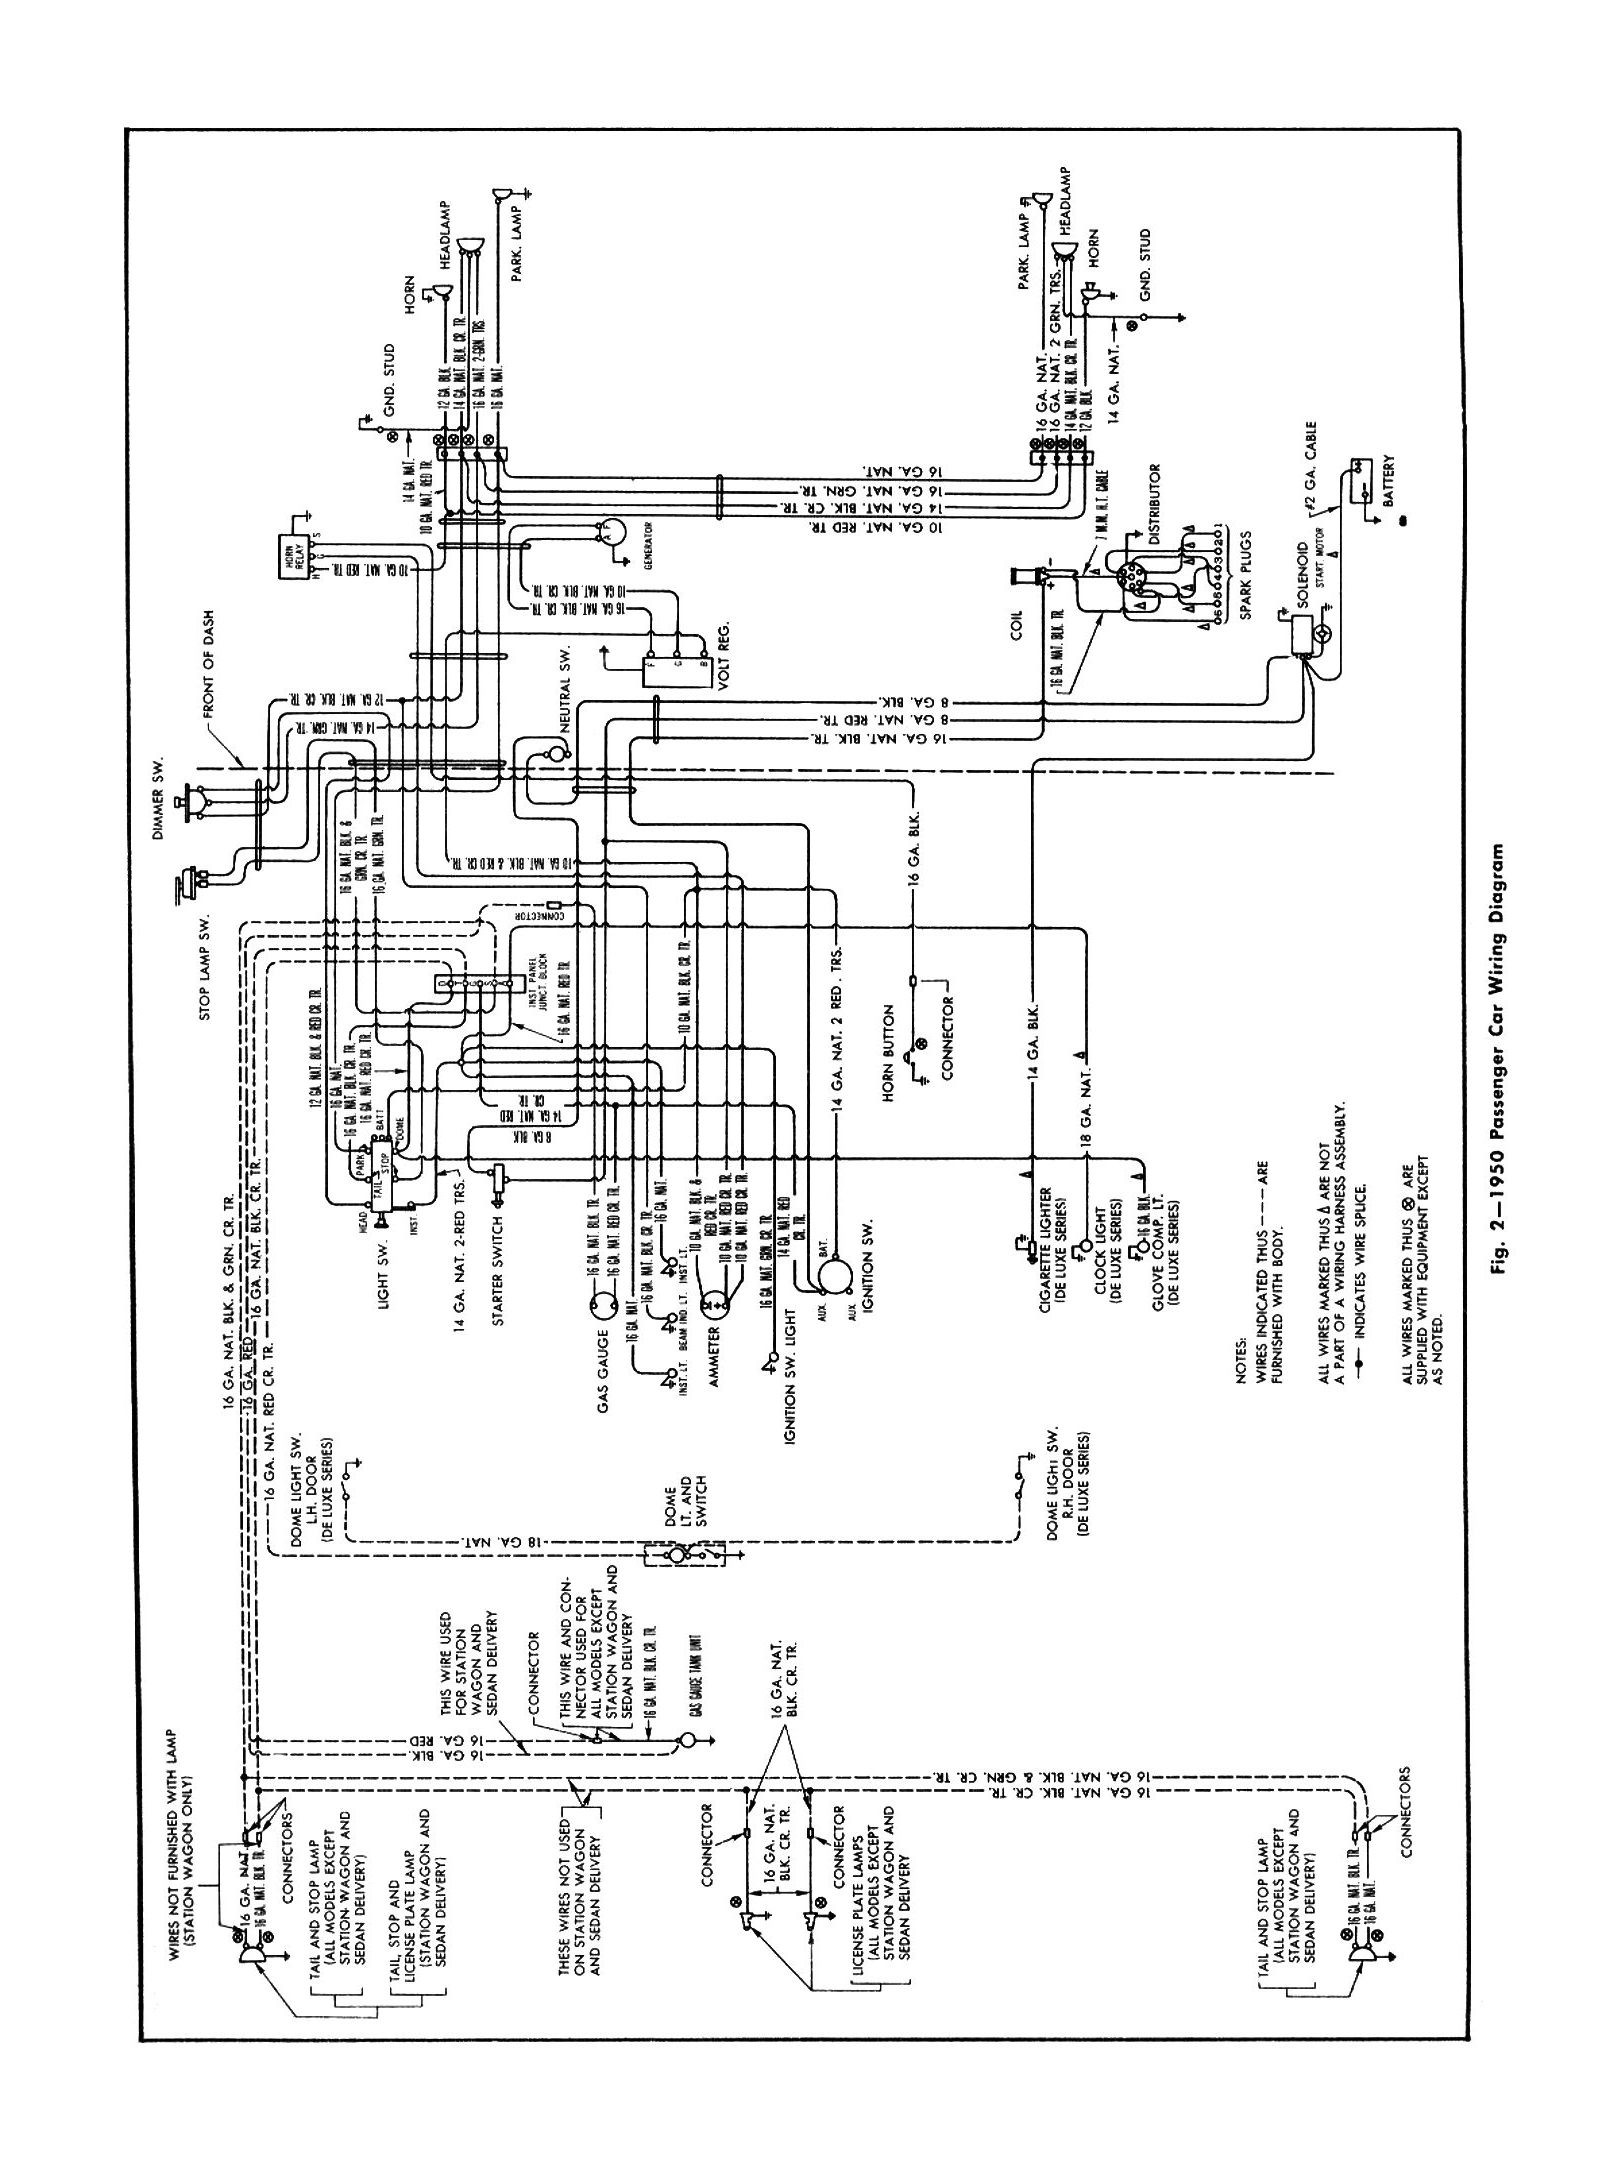 1952 Ford Directional Wiring - Wiring Diagram Information Jeep Electrical Wiring Schematic Directionals on